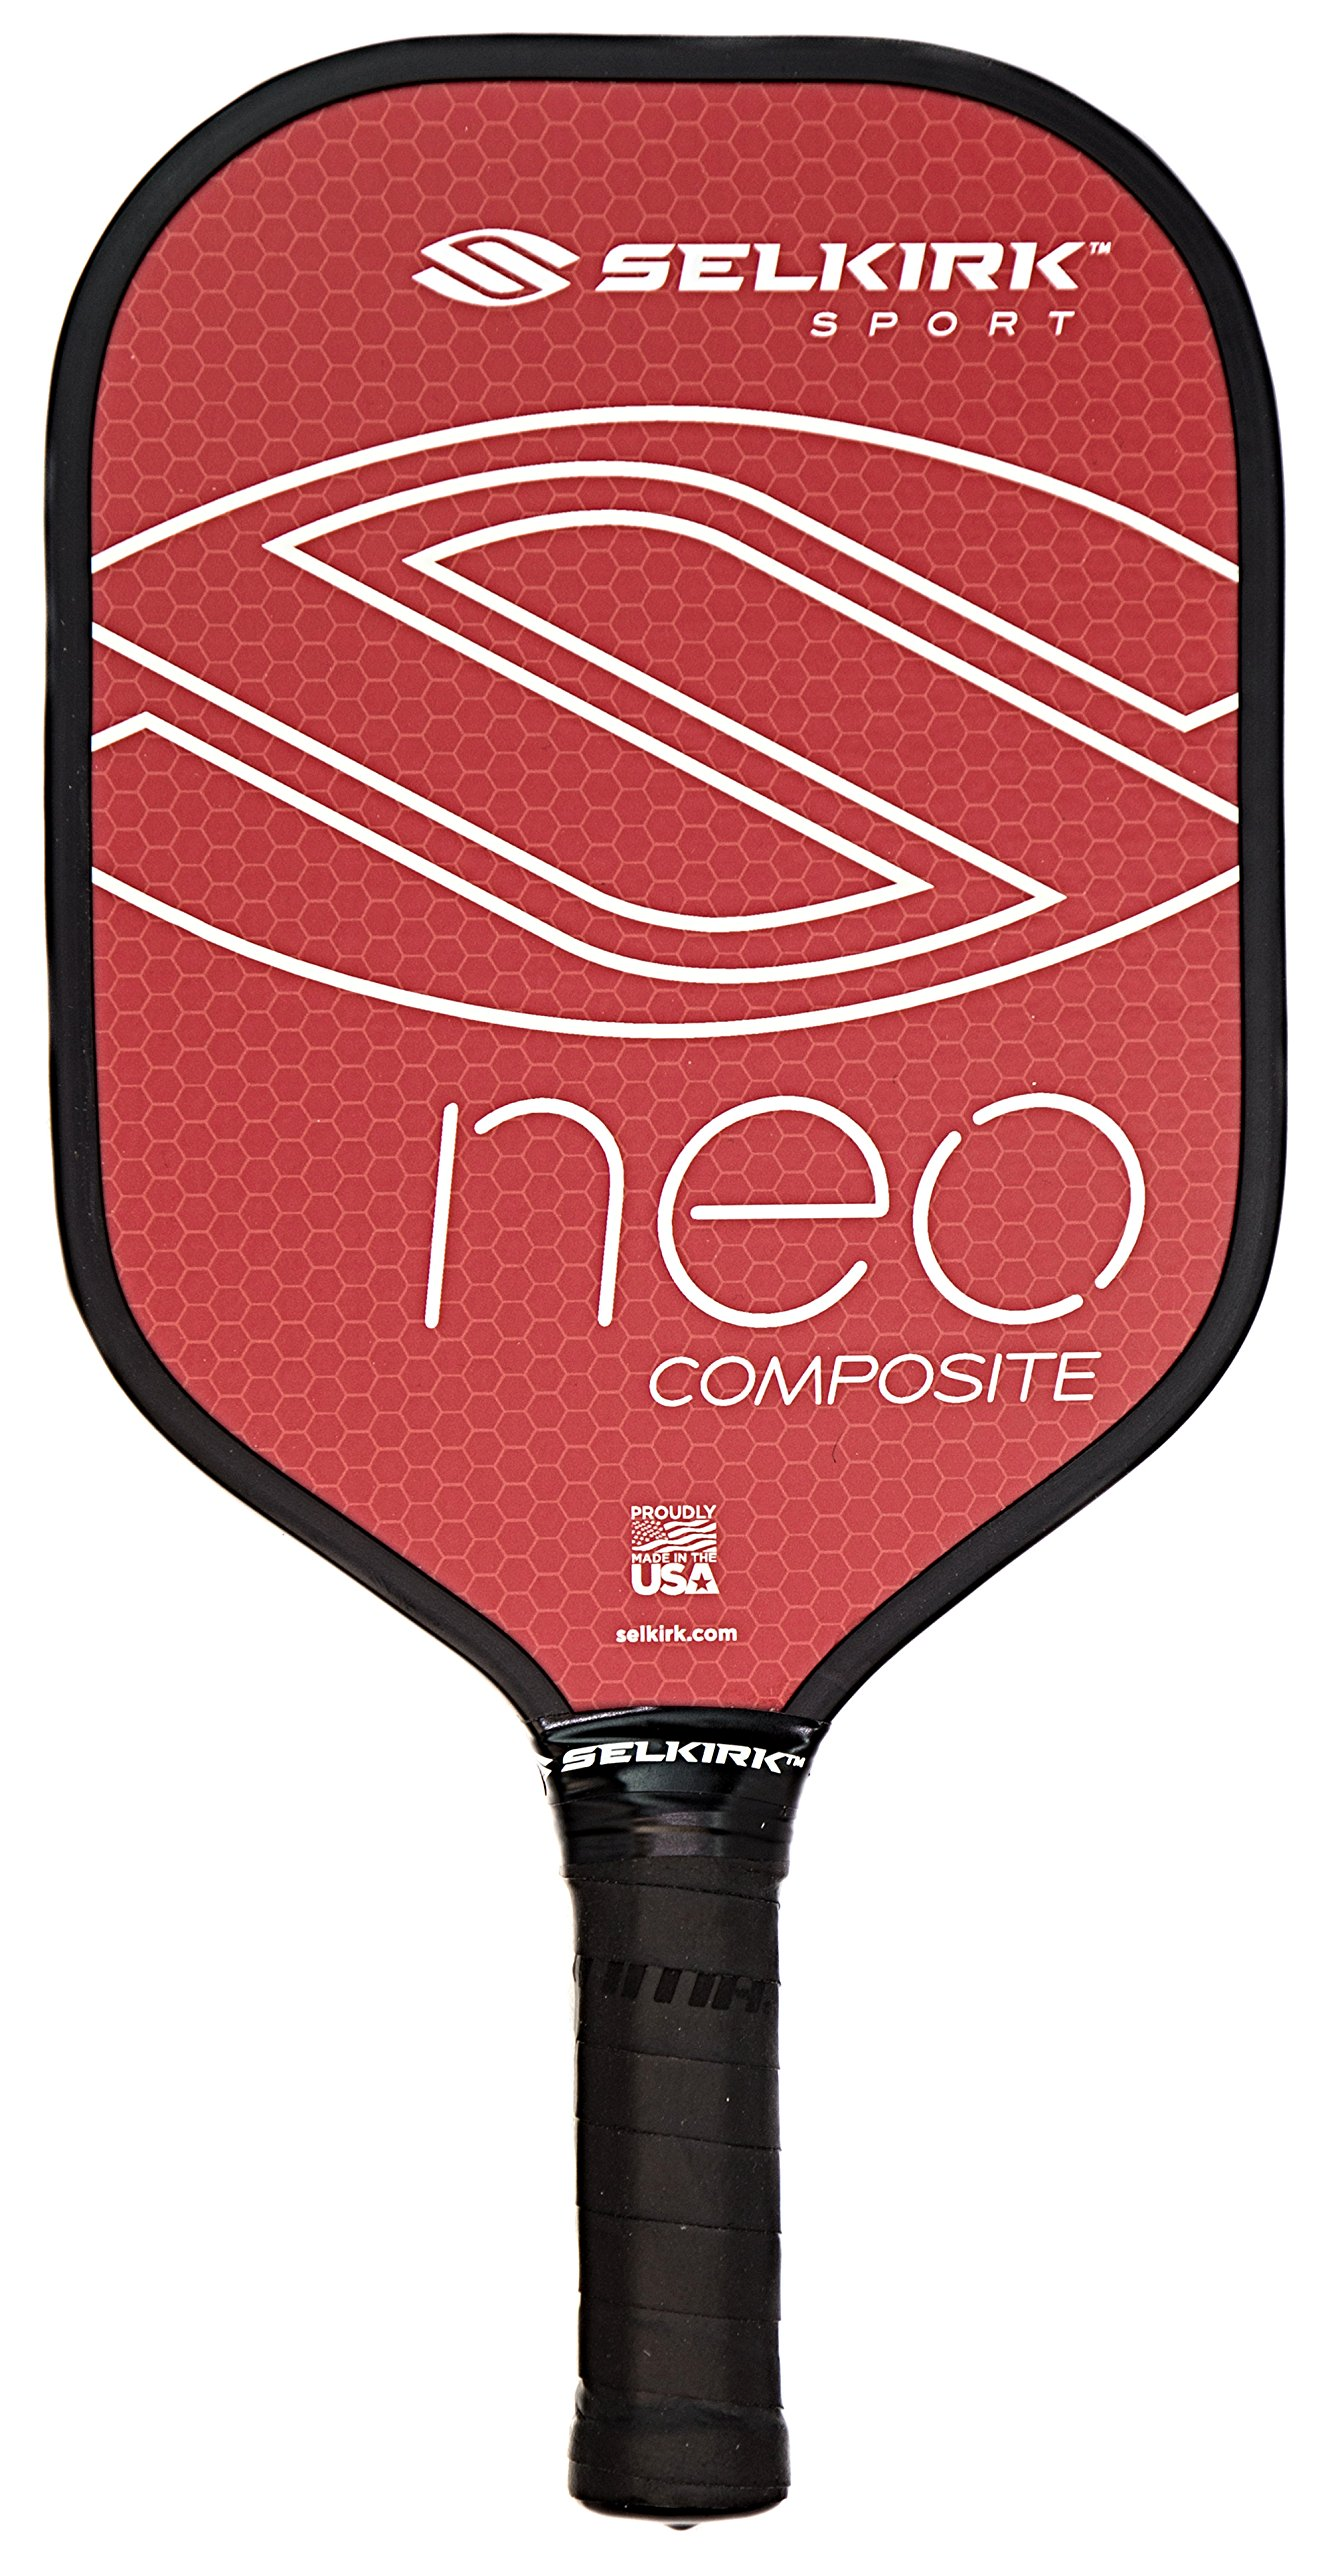 Selkirk NEO Composite Pickleball Paddle - USAPA Approved - PowerCore Polymer Core - Composite Surface - EdgeSentry Protection - ThinGrip Handle - Pickleball Racket/Racquet. (Red) by Selkirk Sport